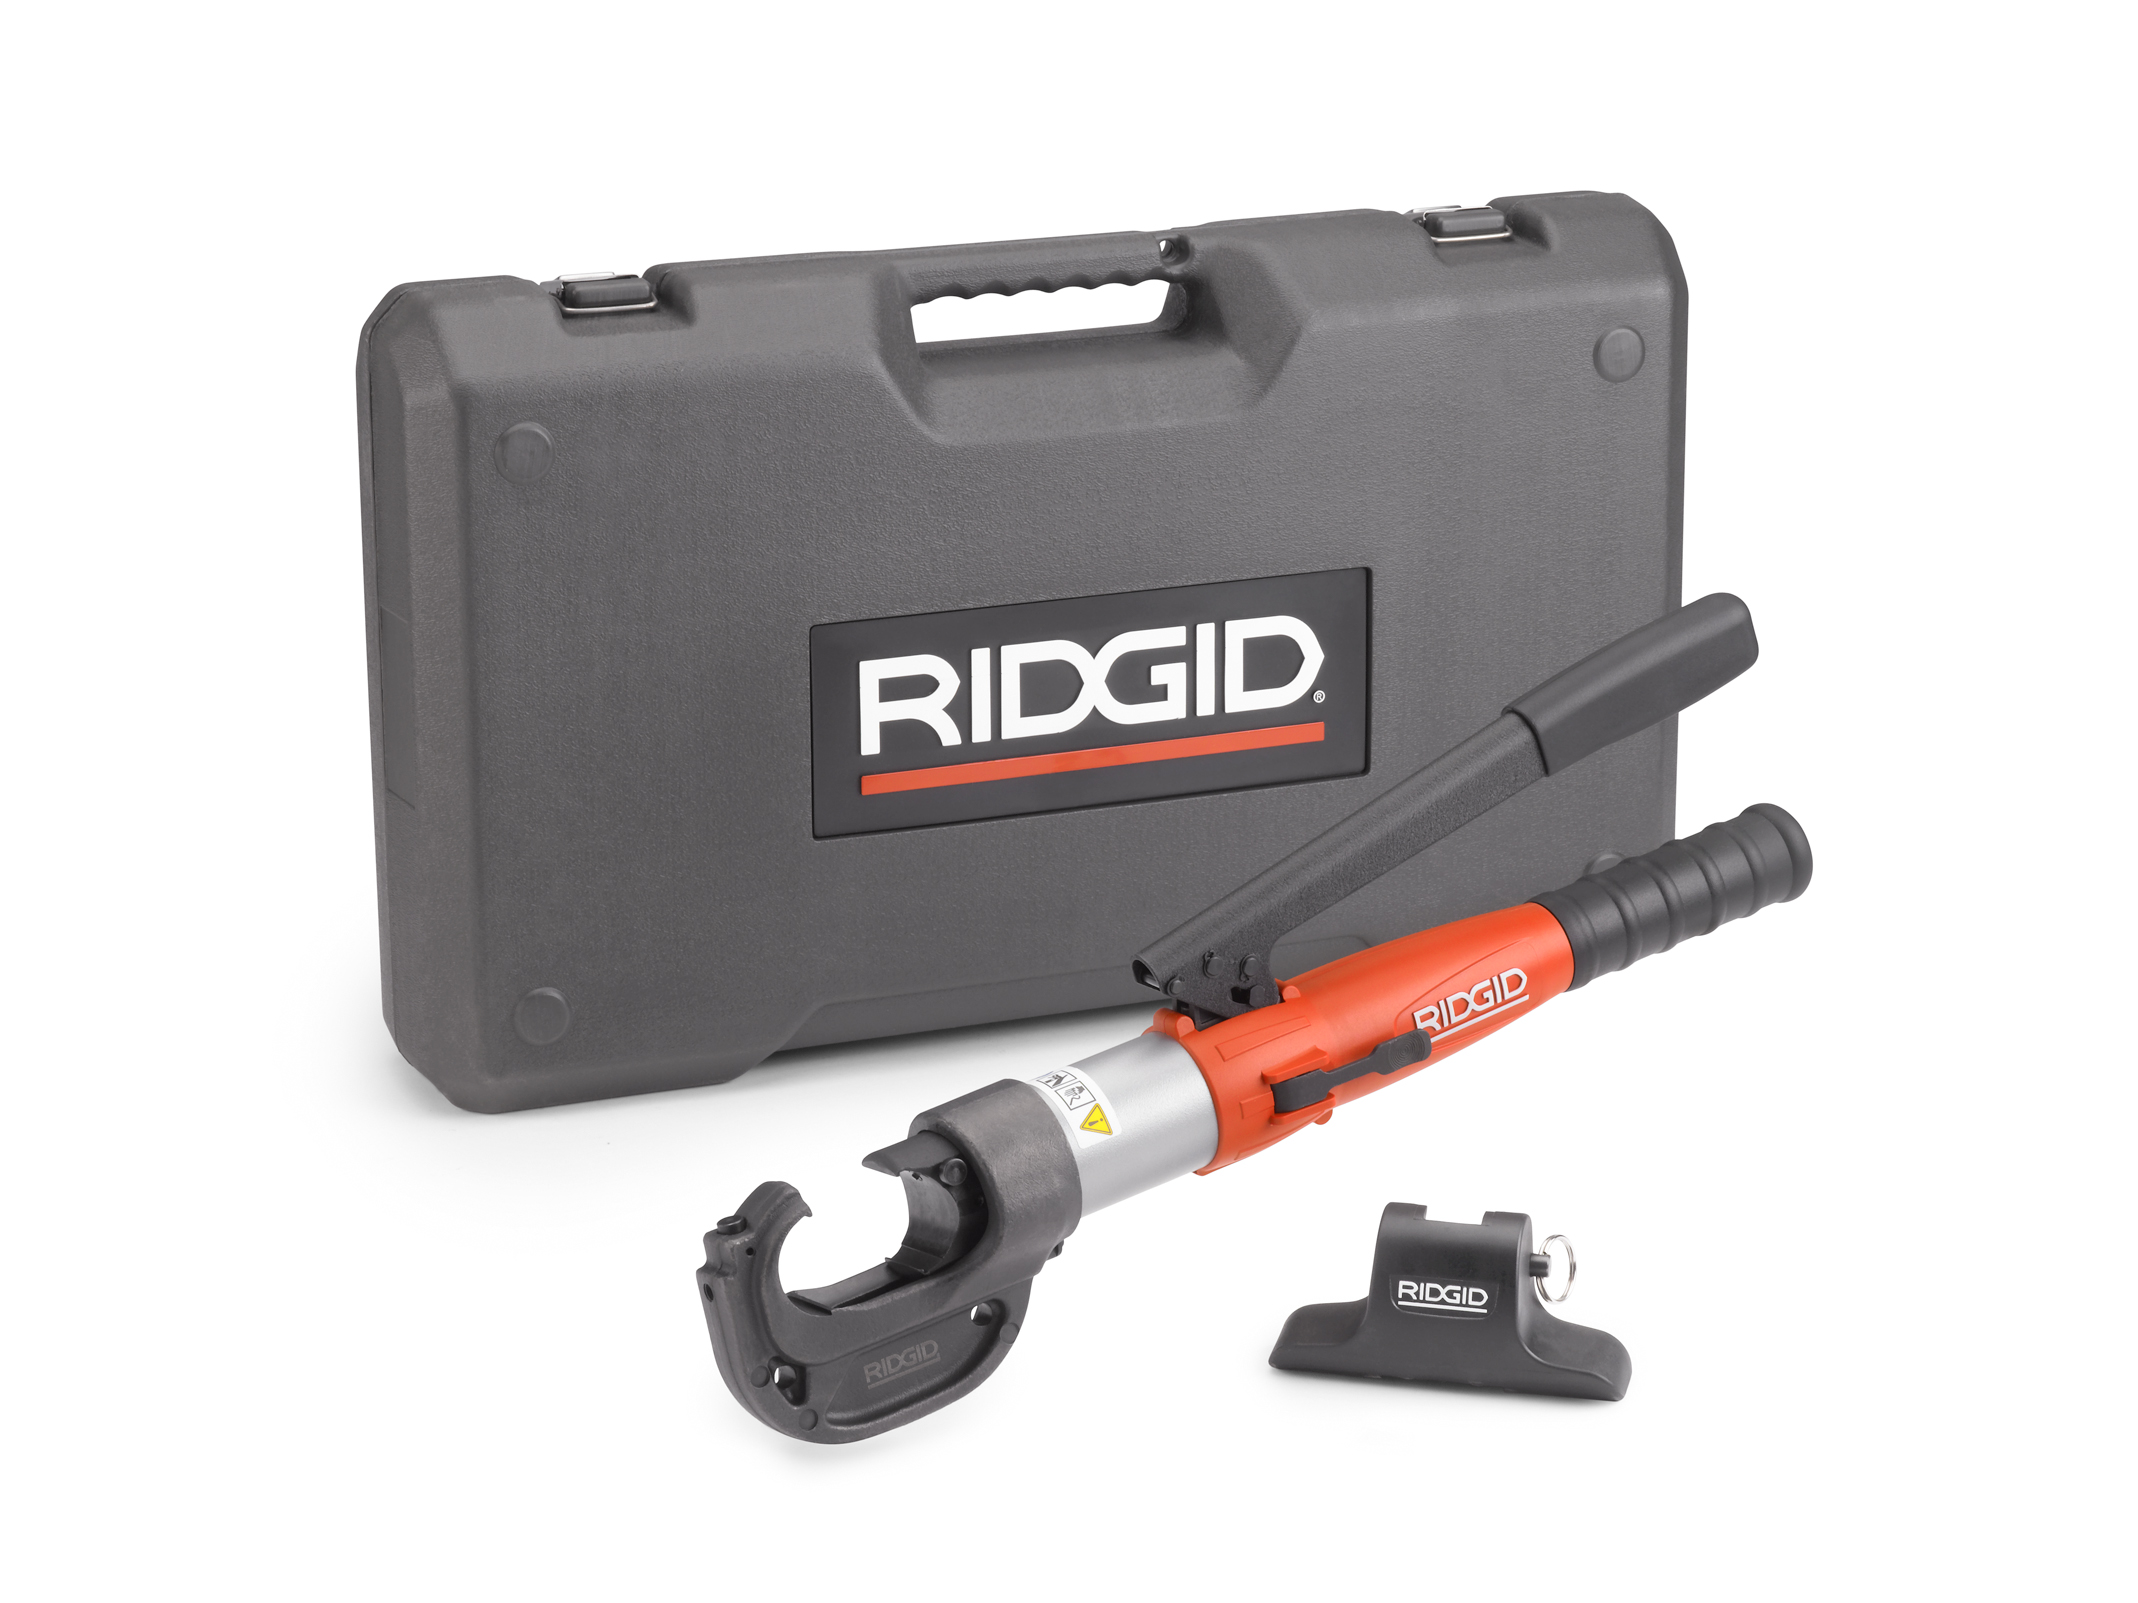 RIDGID 48378-RE130M - RE 130-M Hydraulic Crimping Tool & Case (no dies)